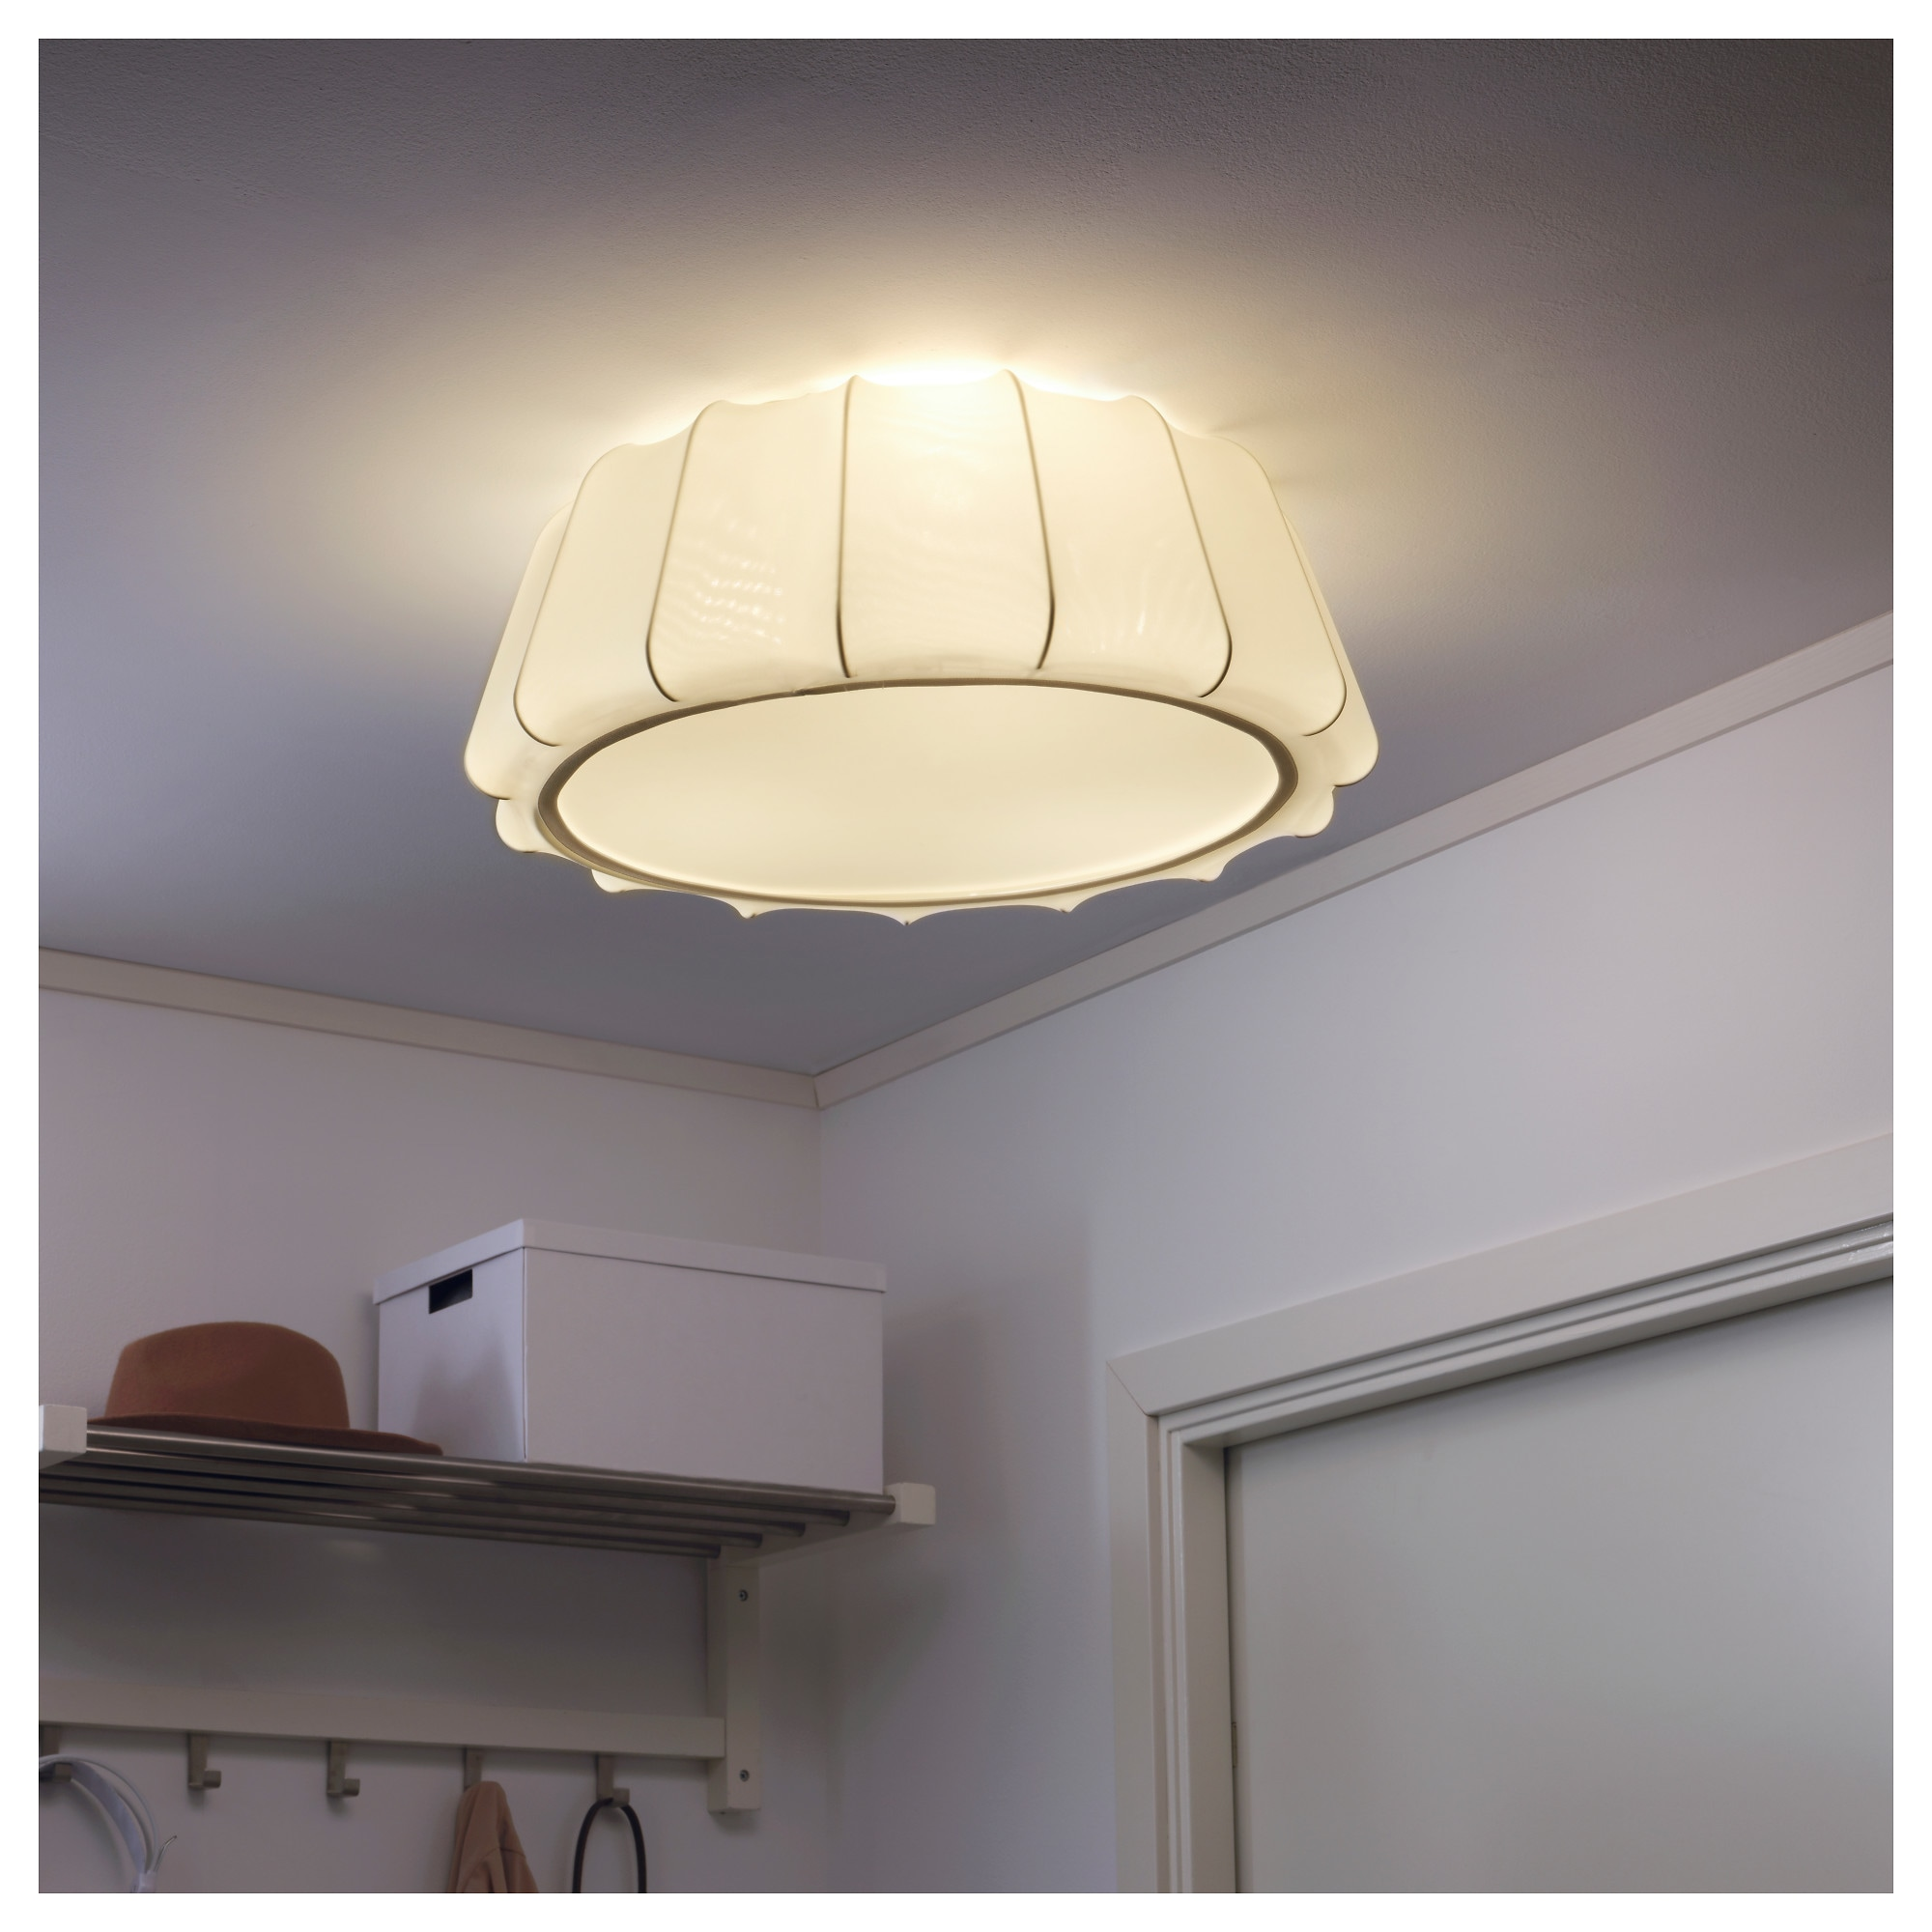 ikea luminaire plafond interesting fuga ikea with ikea luminaire plafond amazing centigrad. Black Bedroom Furniture Sets. Home Design Ideas